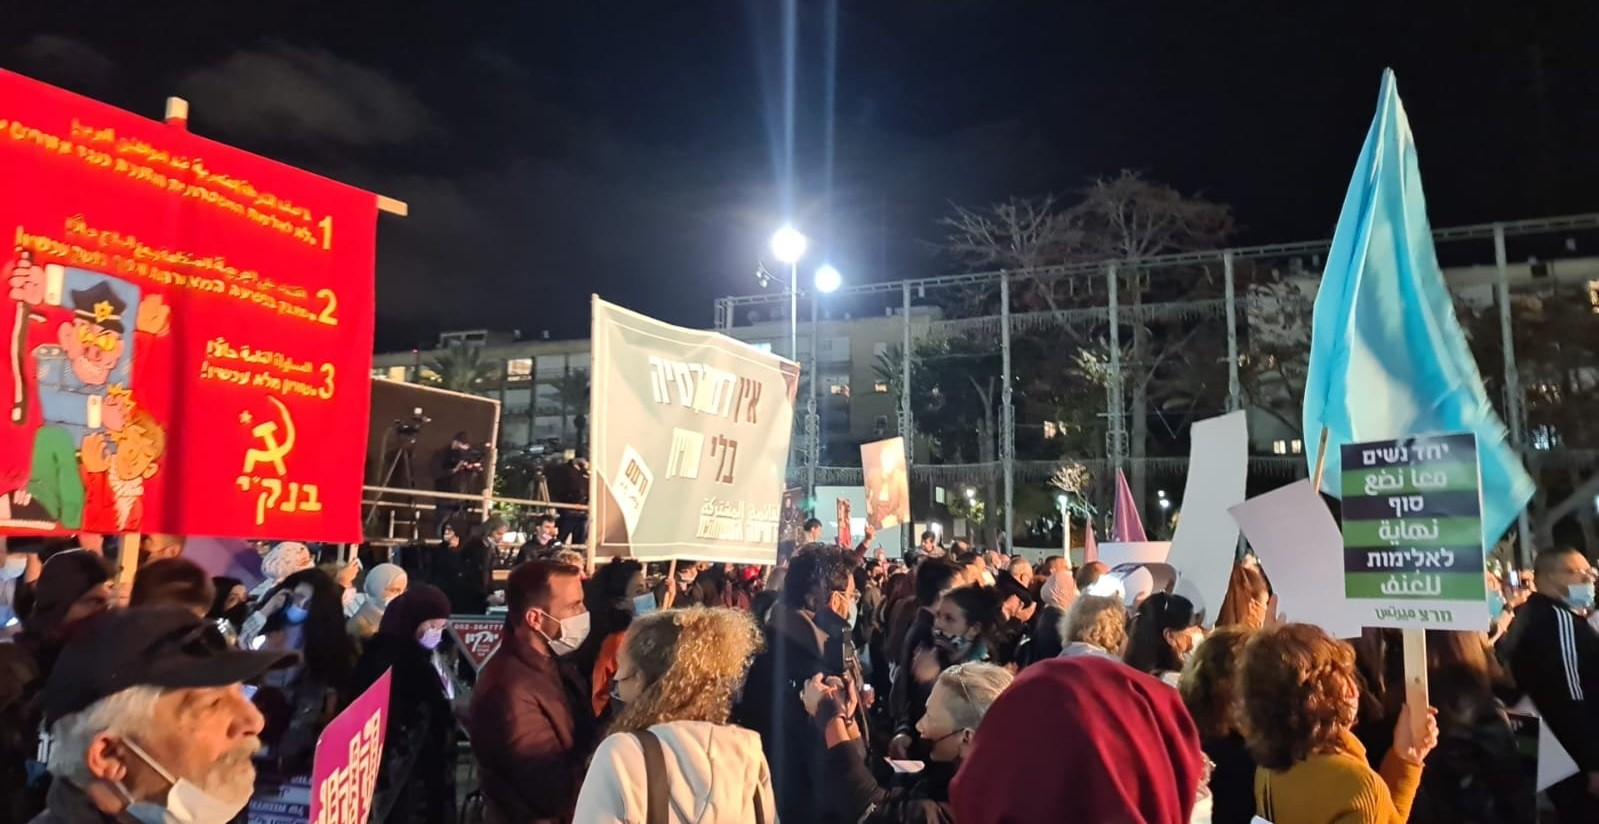 Demonstrators in Tel Aviv's Rabin Square, protested the inaction of Israel's far-right government and police amidst the surging crime and violence in Arab communities, Thursday, March 18, 2021.